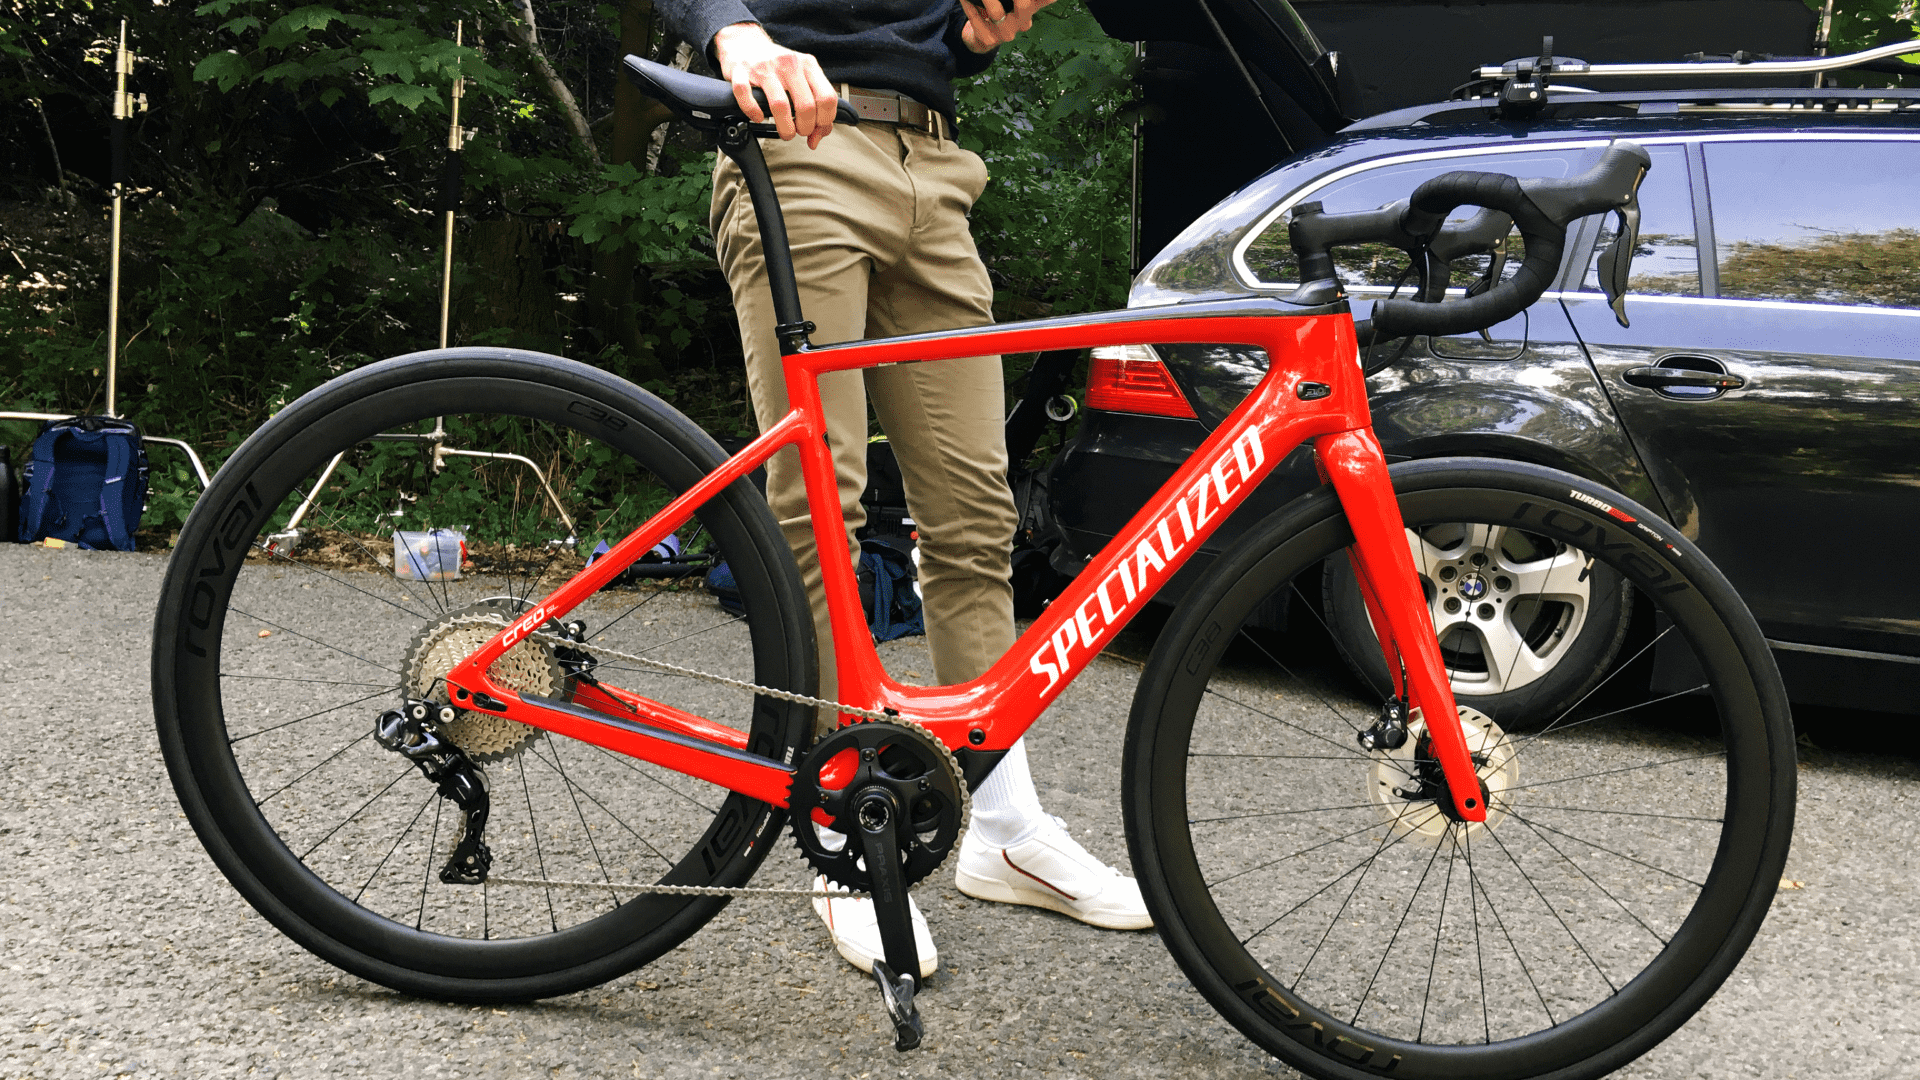 The Specialized Creo SL